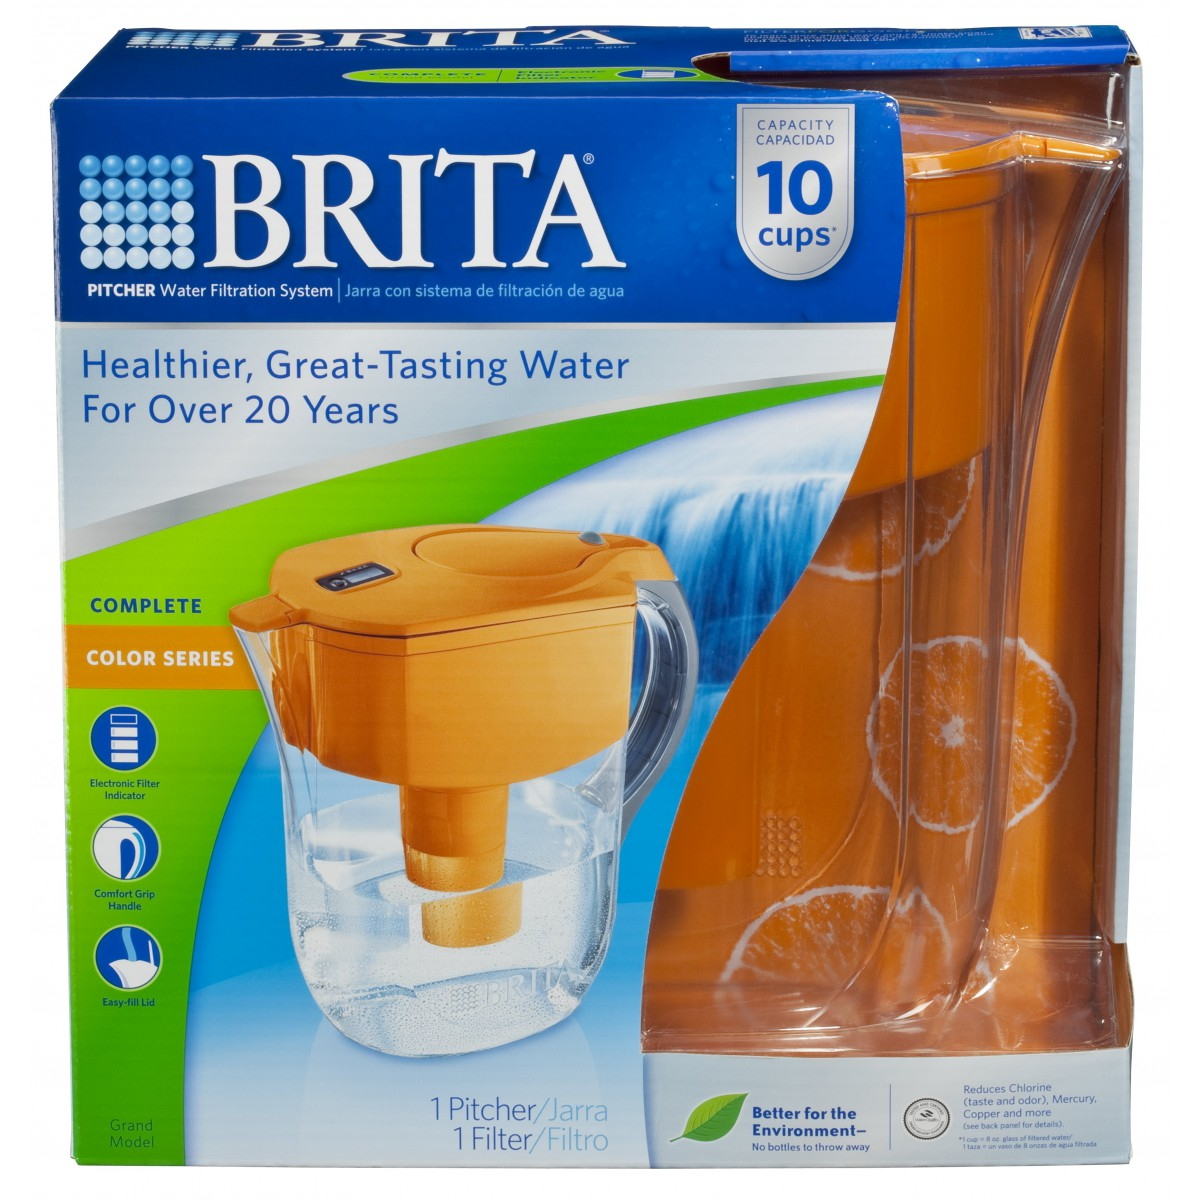 weakness analysis of brita water filters Brita was licensed by clorox from brita gmbh, a german company in 1987 under the license agreement, clorox would buy filters from brita and the first brita product was a pitcher water filter.